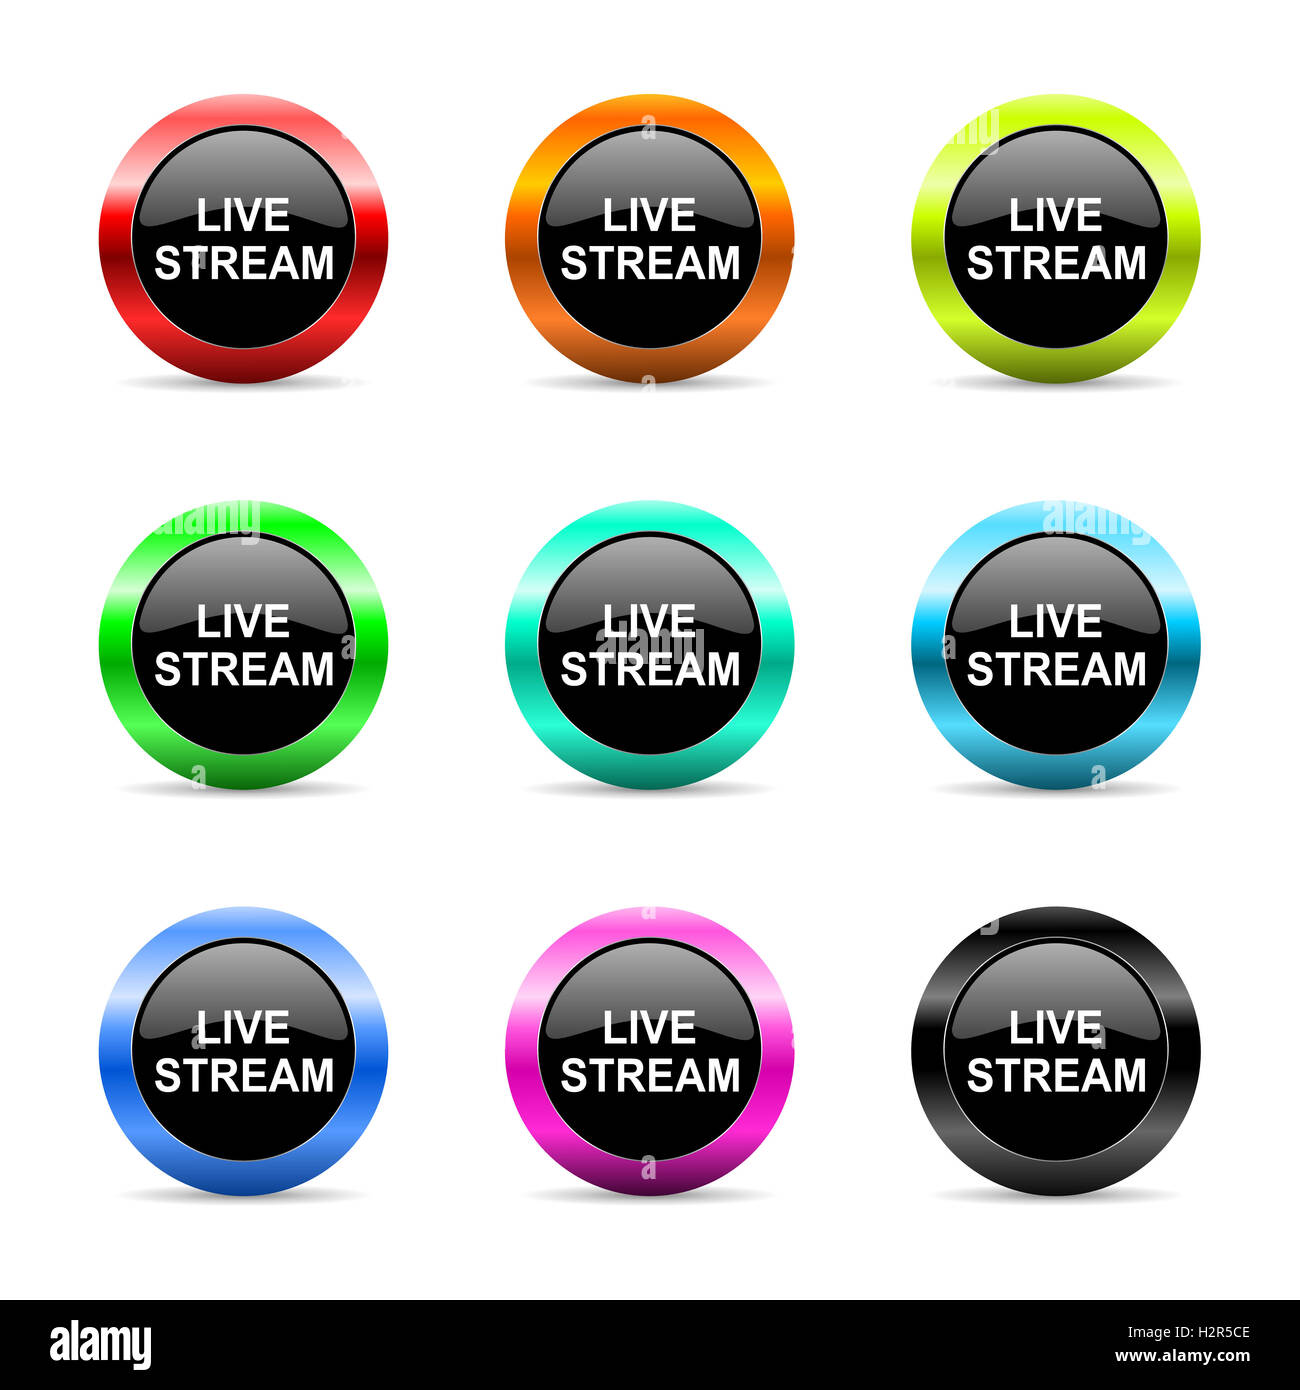 live stream web icons set - Stock Image